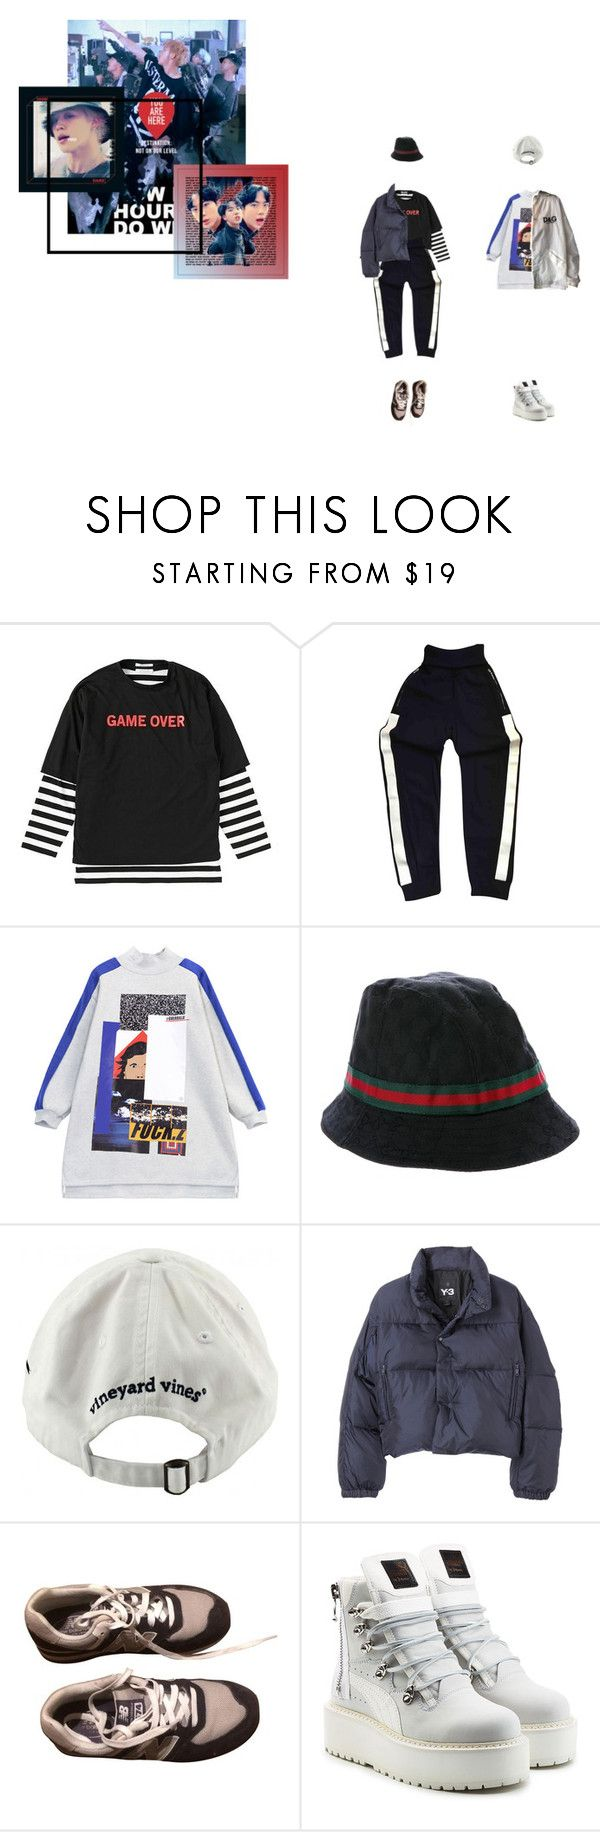 """m 3 c d r 3 p"" by floralian ❤ liked on Polyvore featuring Chanel, Chicnova Fashion, Gucci, Vineyard Vines, Y-3, New Balance and Puma"